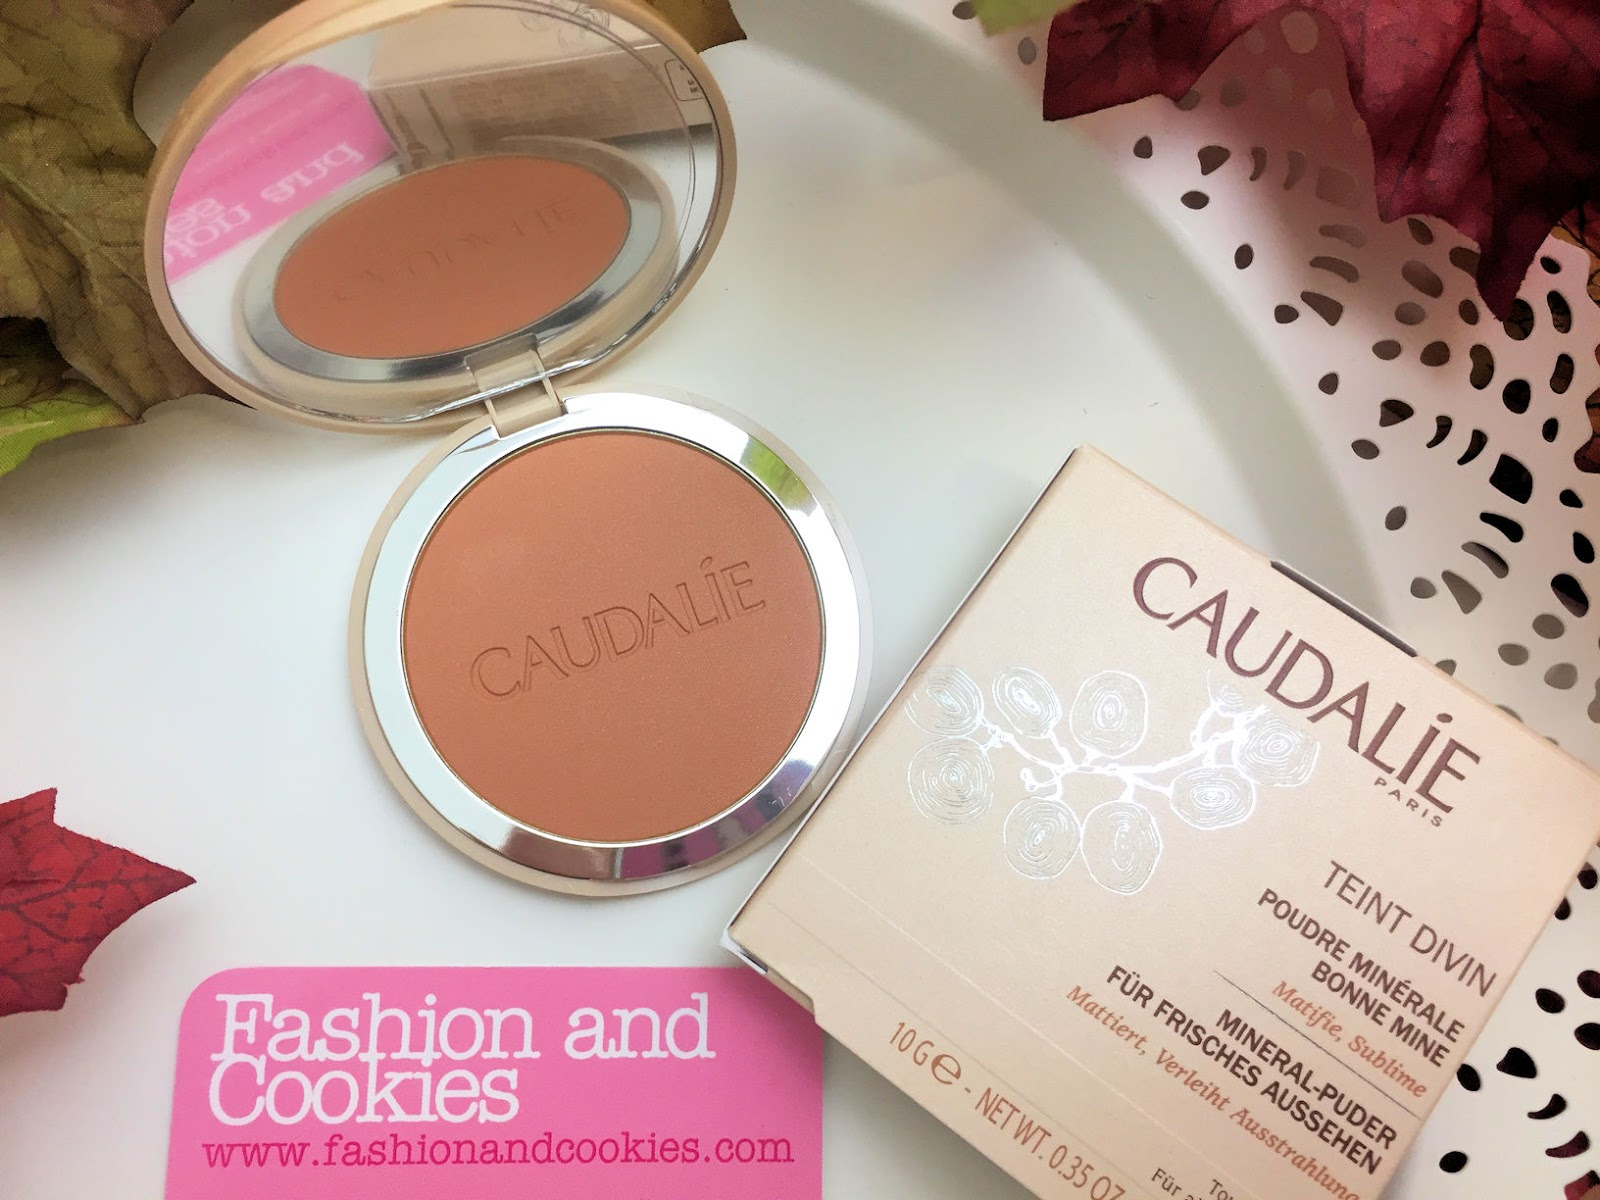 Come mantenere un colorito sano tutto l'anno? Review Caudalie Poudre Minérale Bonne Mine su Fashion and Cookies beauty blog, beauty blogger